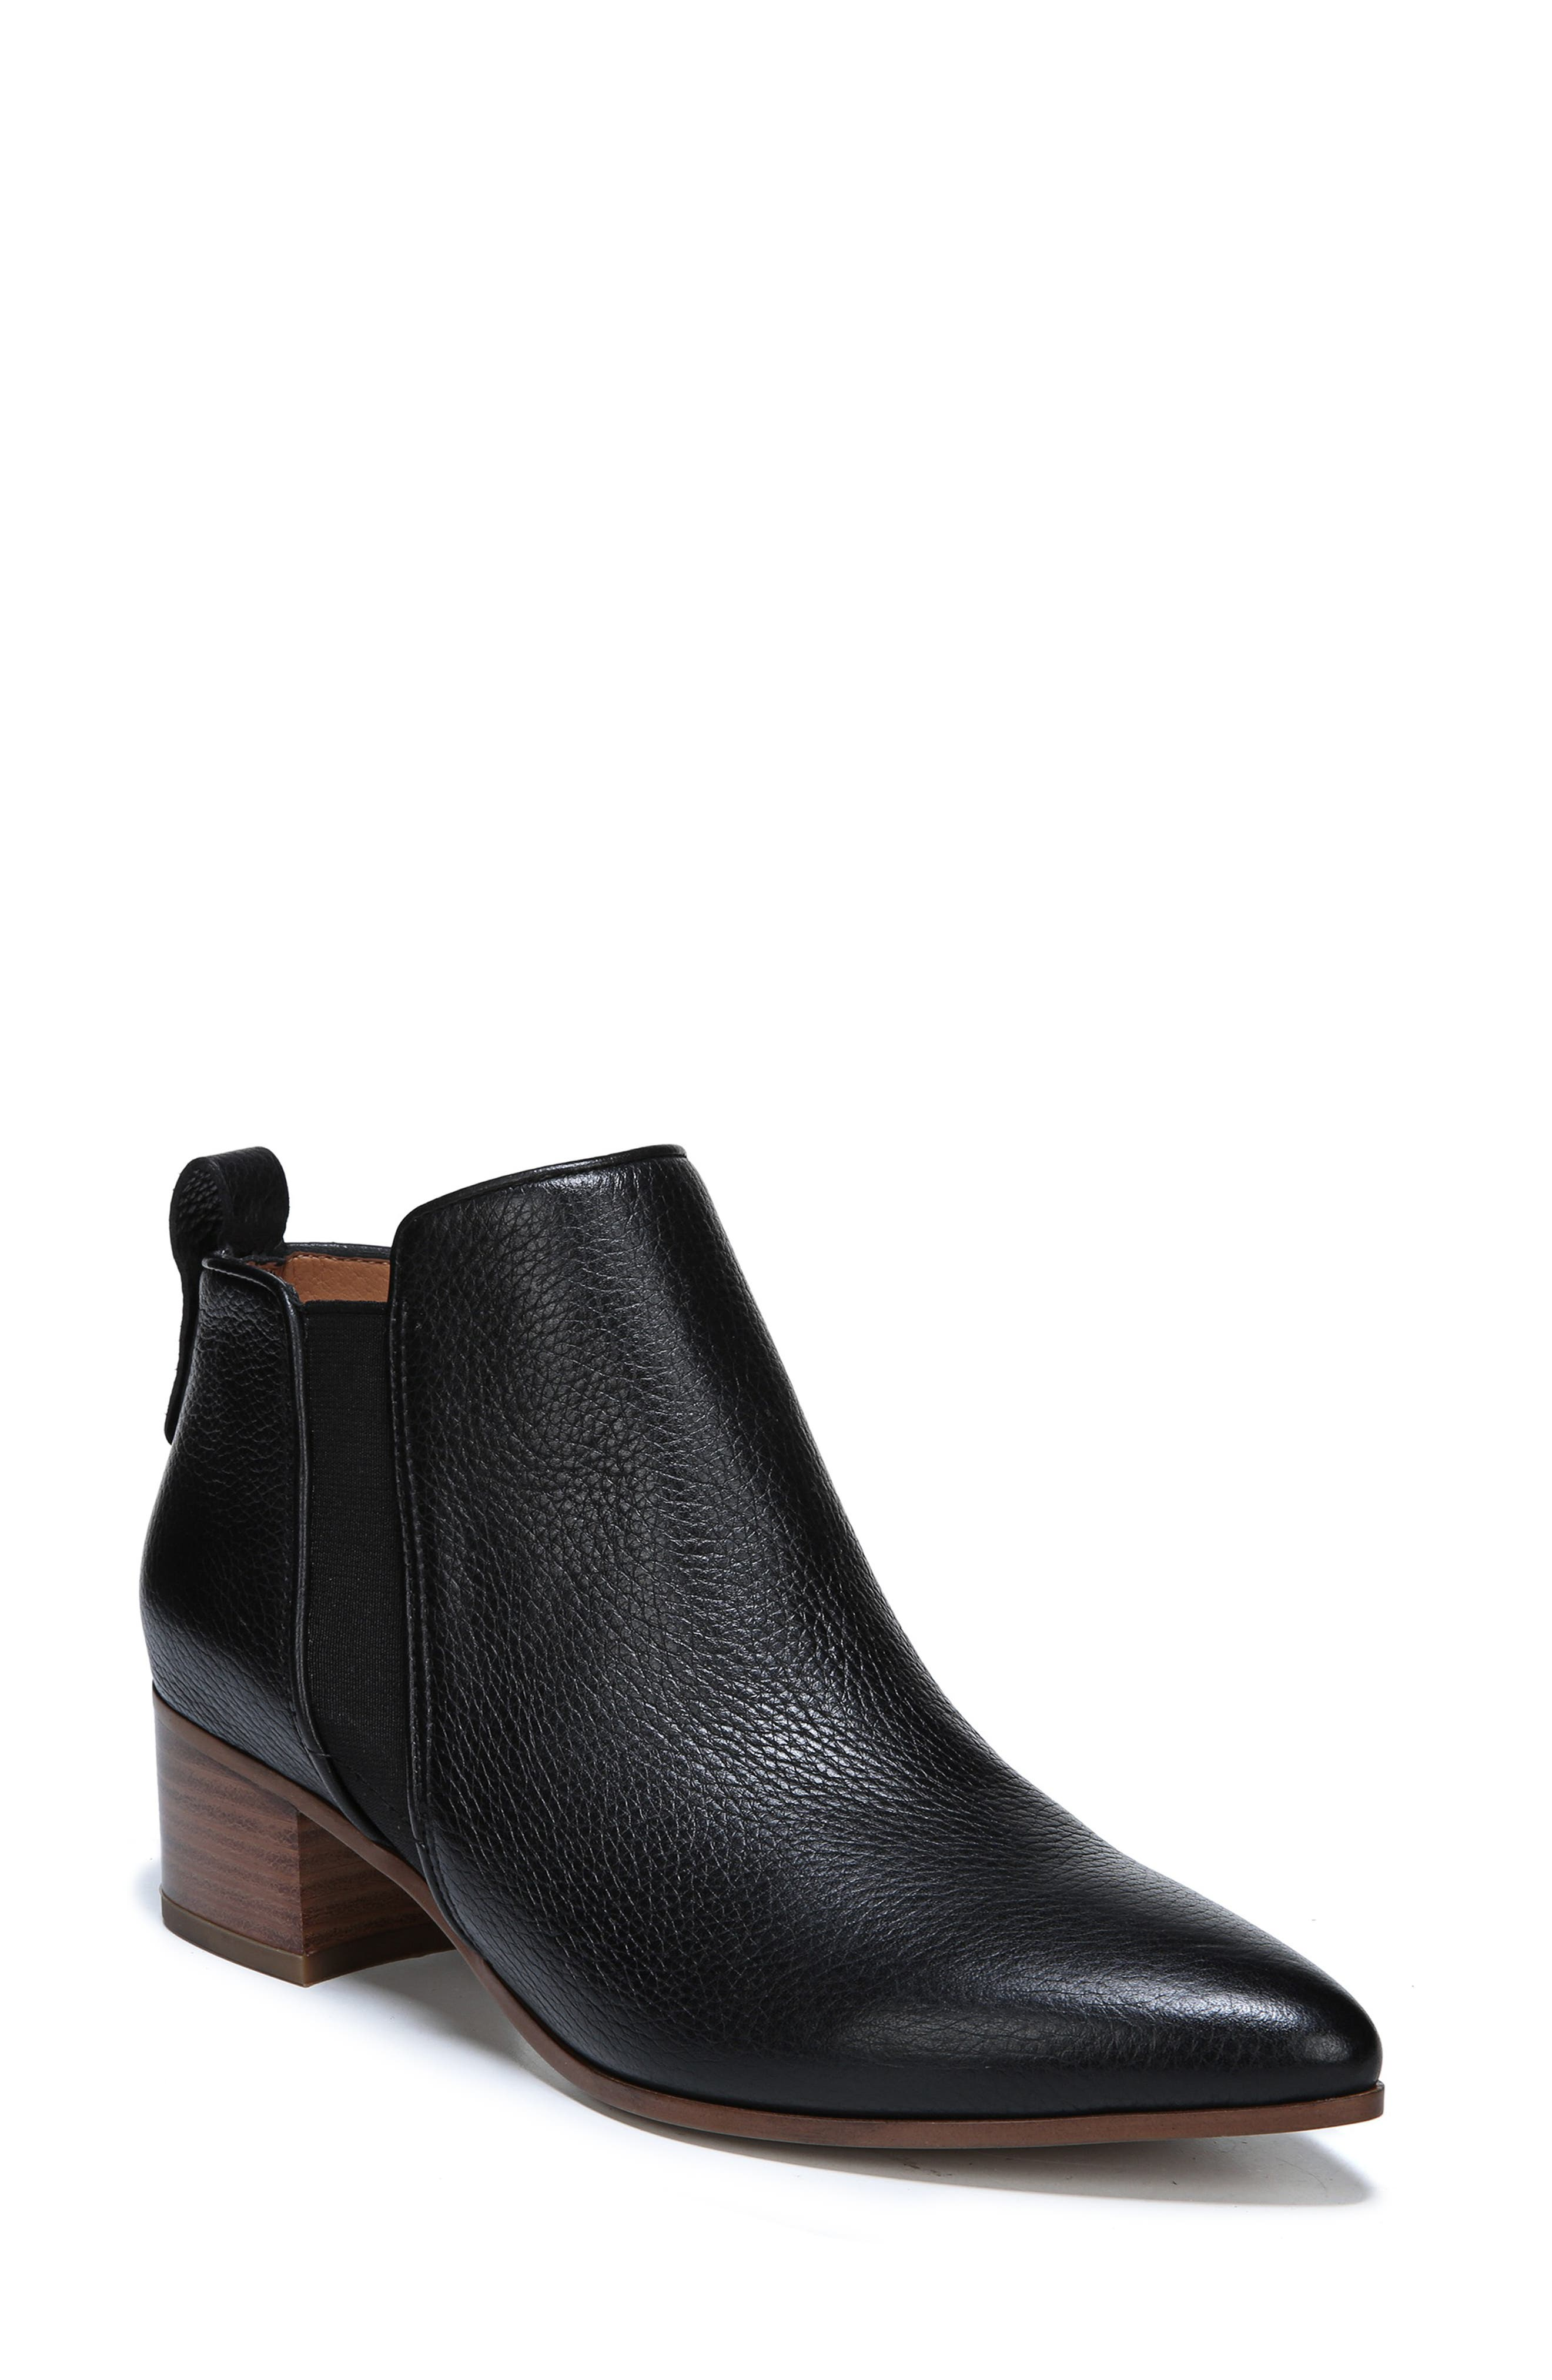 Jollie Bootie,                             Main thumbnail 1, color,                             BLACK LEATHER